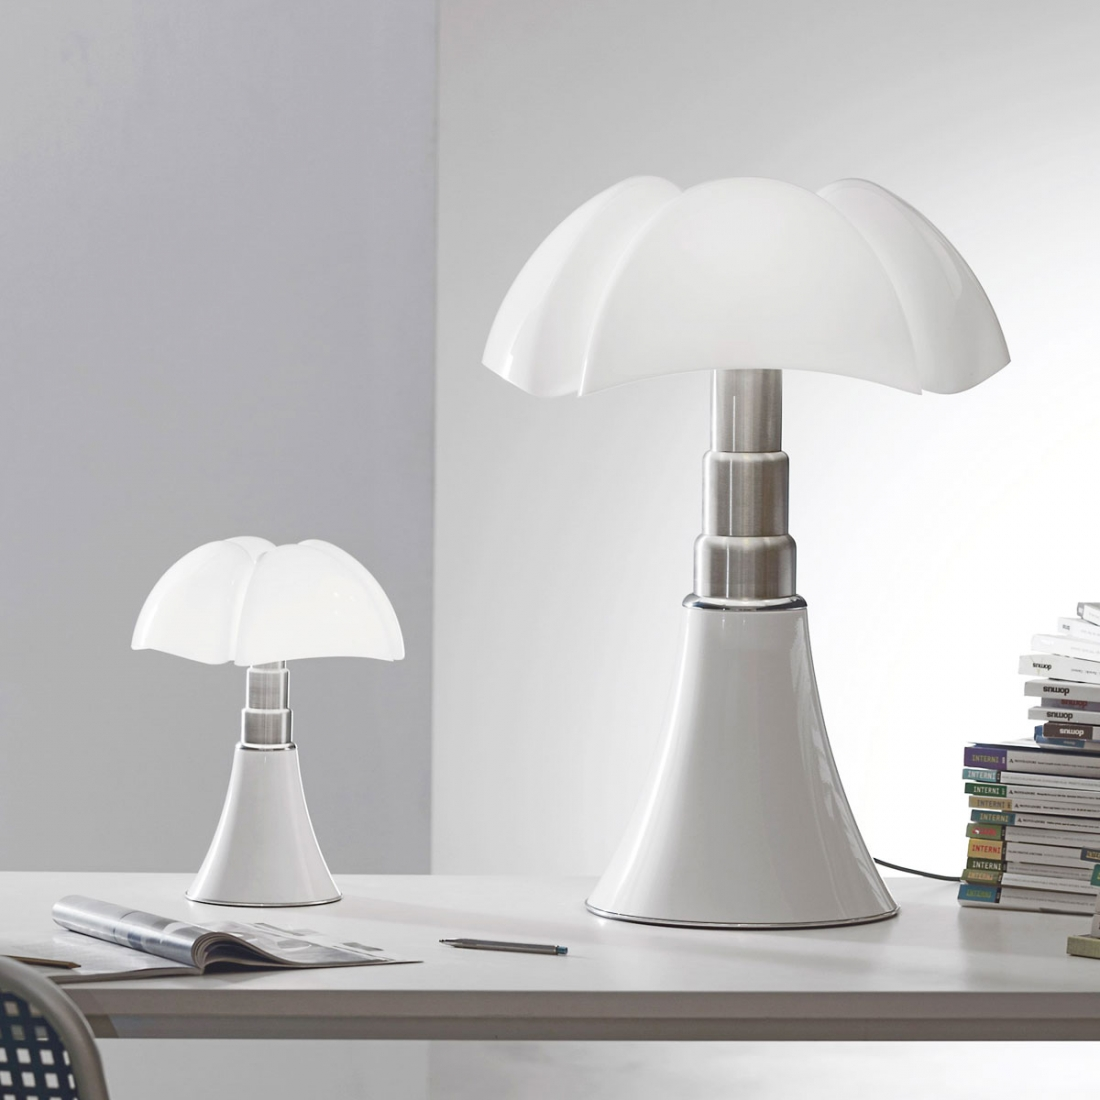 lampe poser martinelli luce minipipistrello led contr le tactile. Black Bedroom Furniture Sets. Home Design Ideas